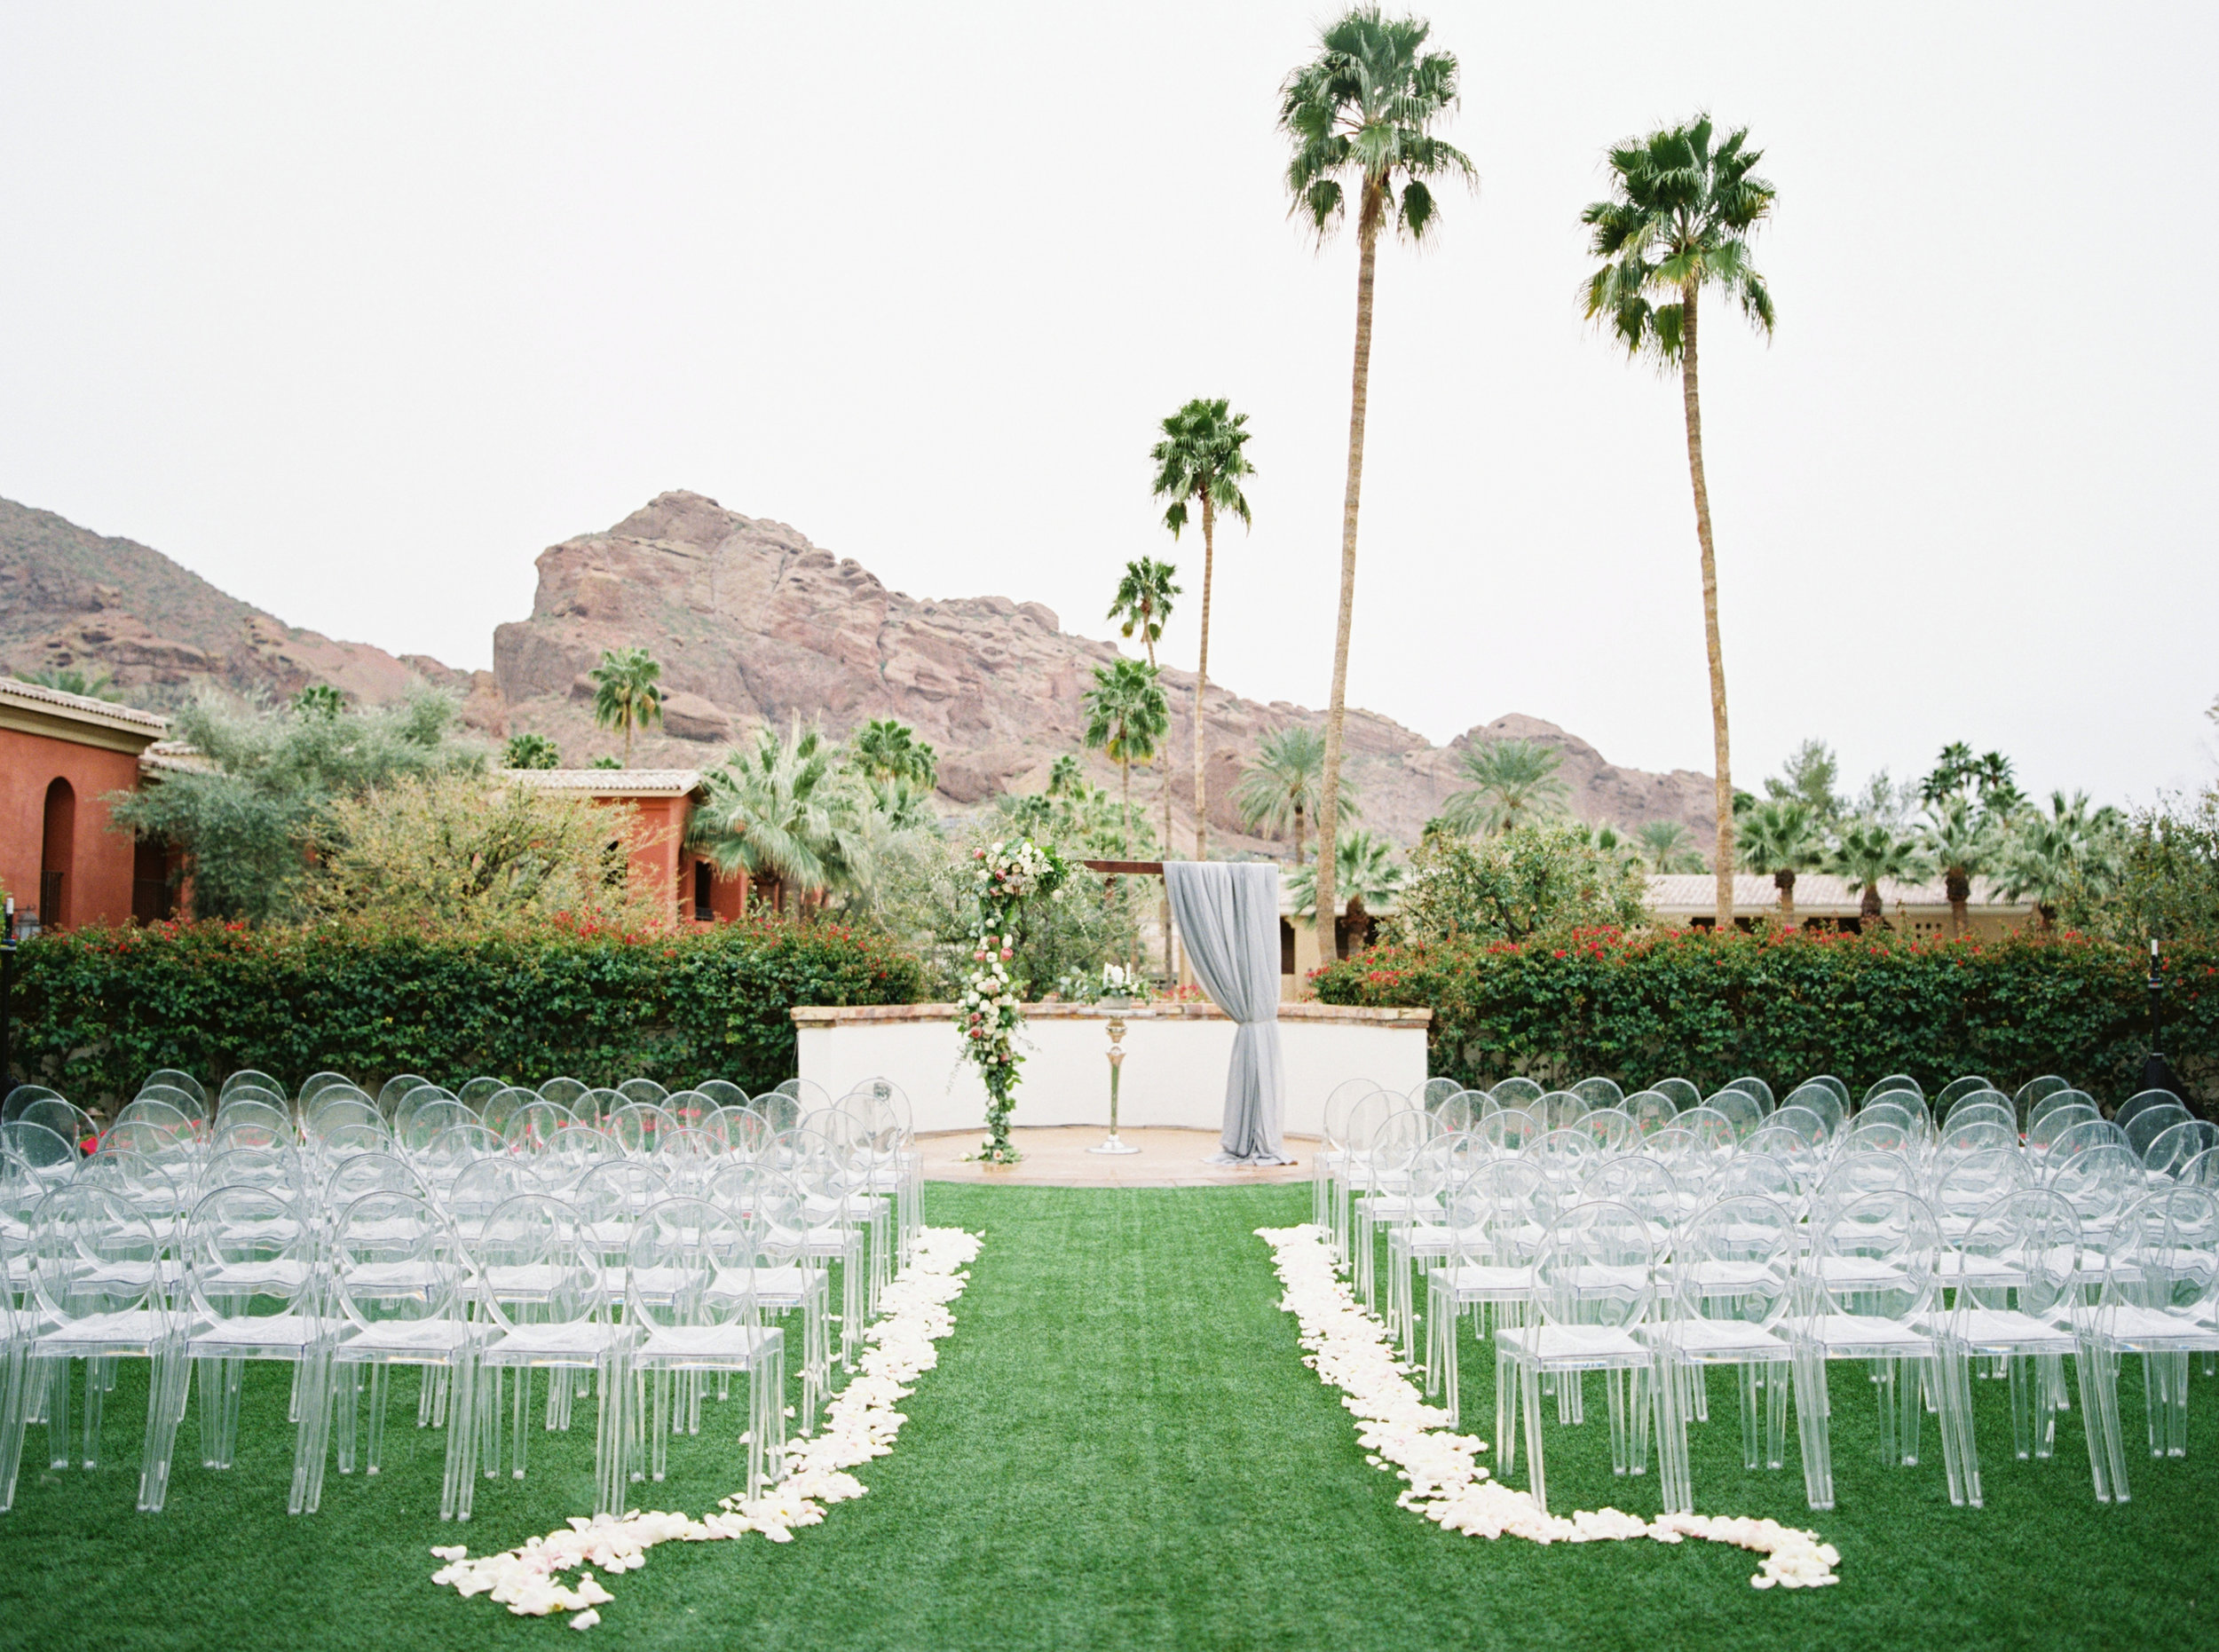 27 ceremony seating ghost chair flower aisle ceremony arch floral arch omni scottsdale montelucia wedding outdoor wedding rainy wedding rain on wedding day Life Design Events photos by Melissa Jill Photography.jpg